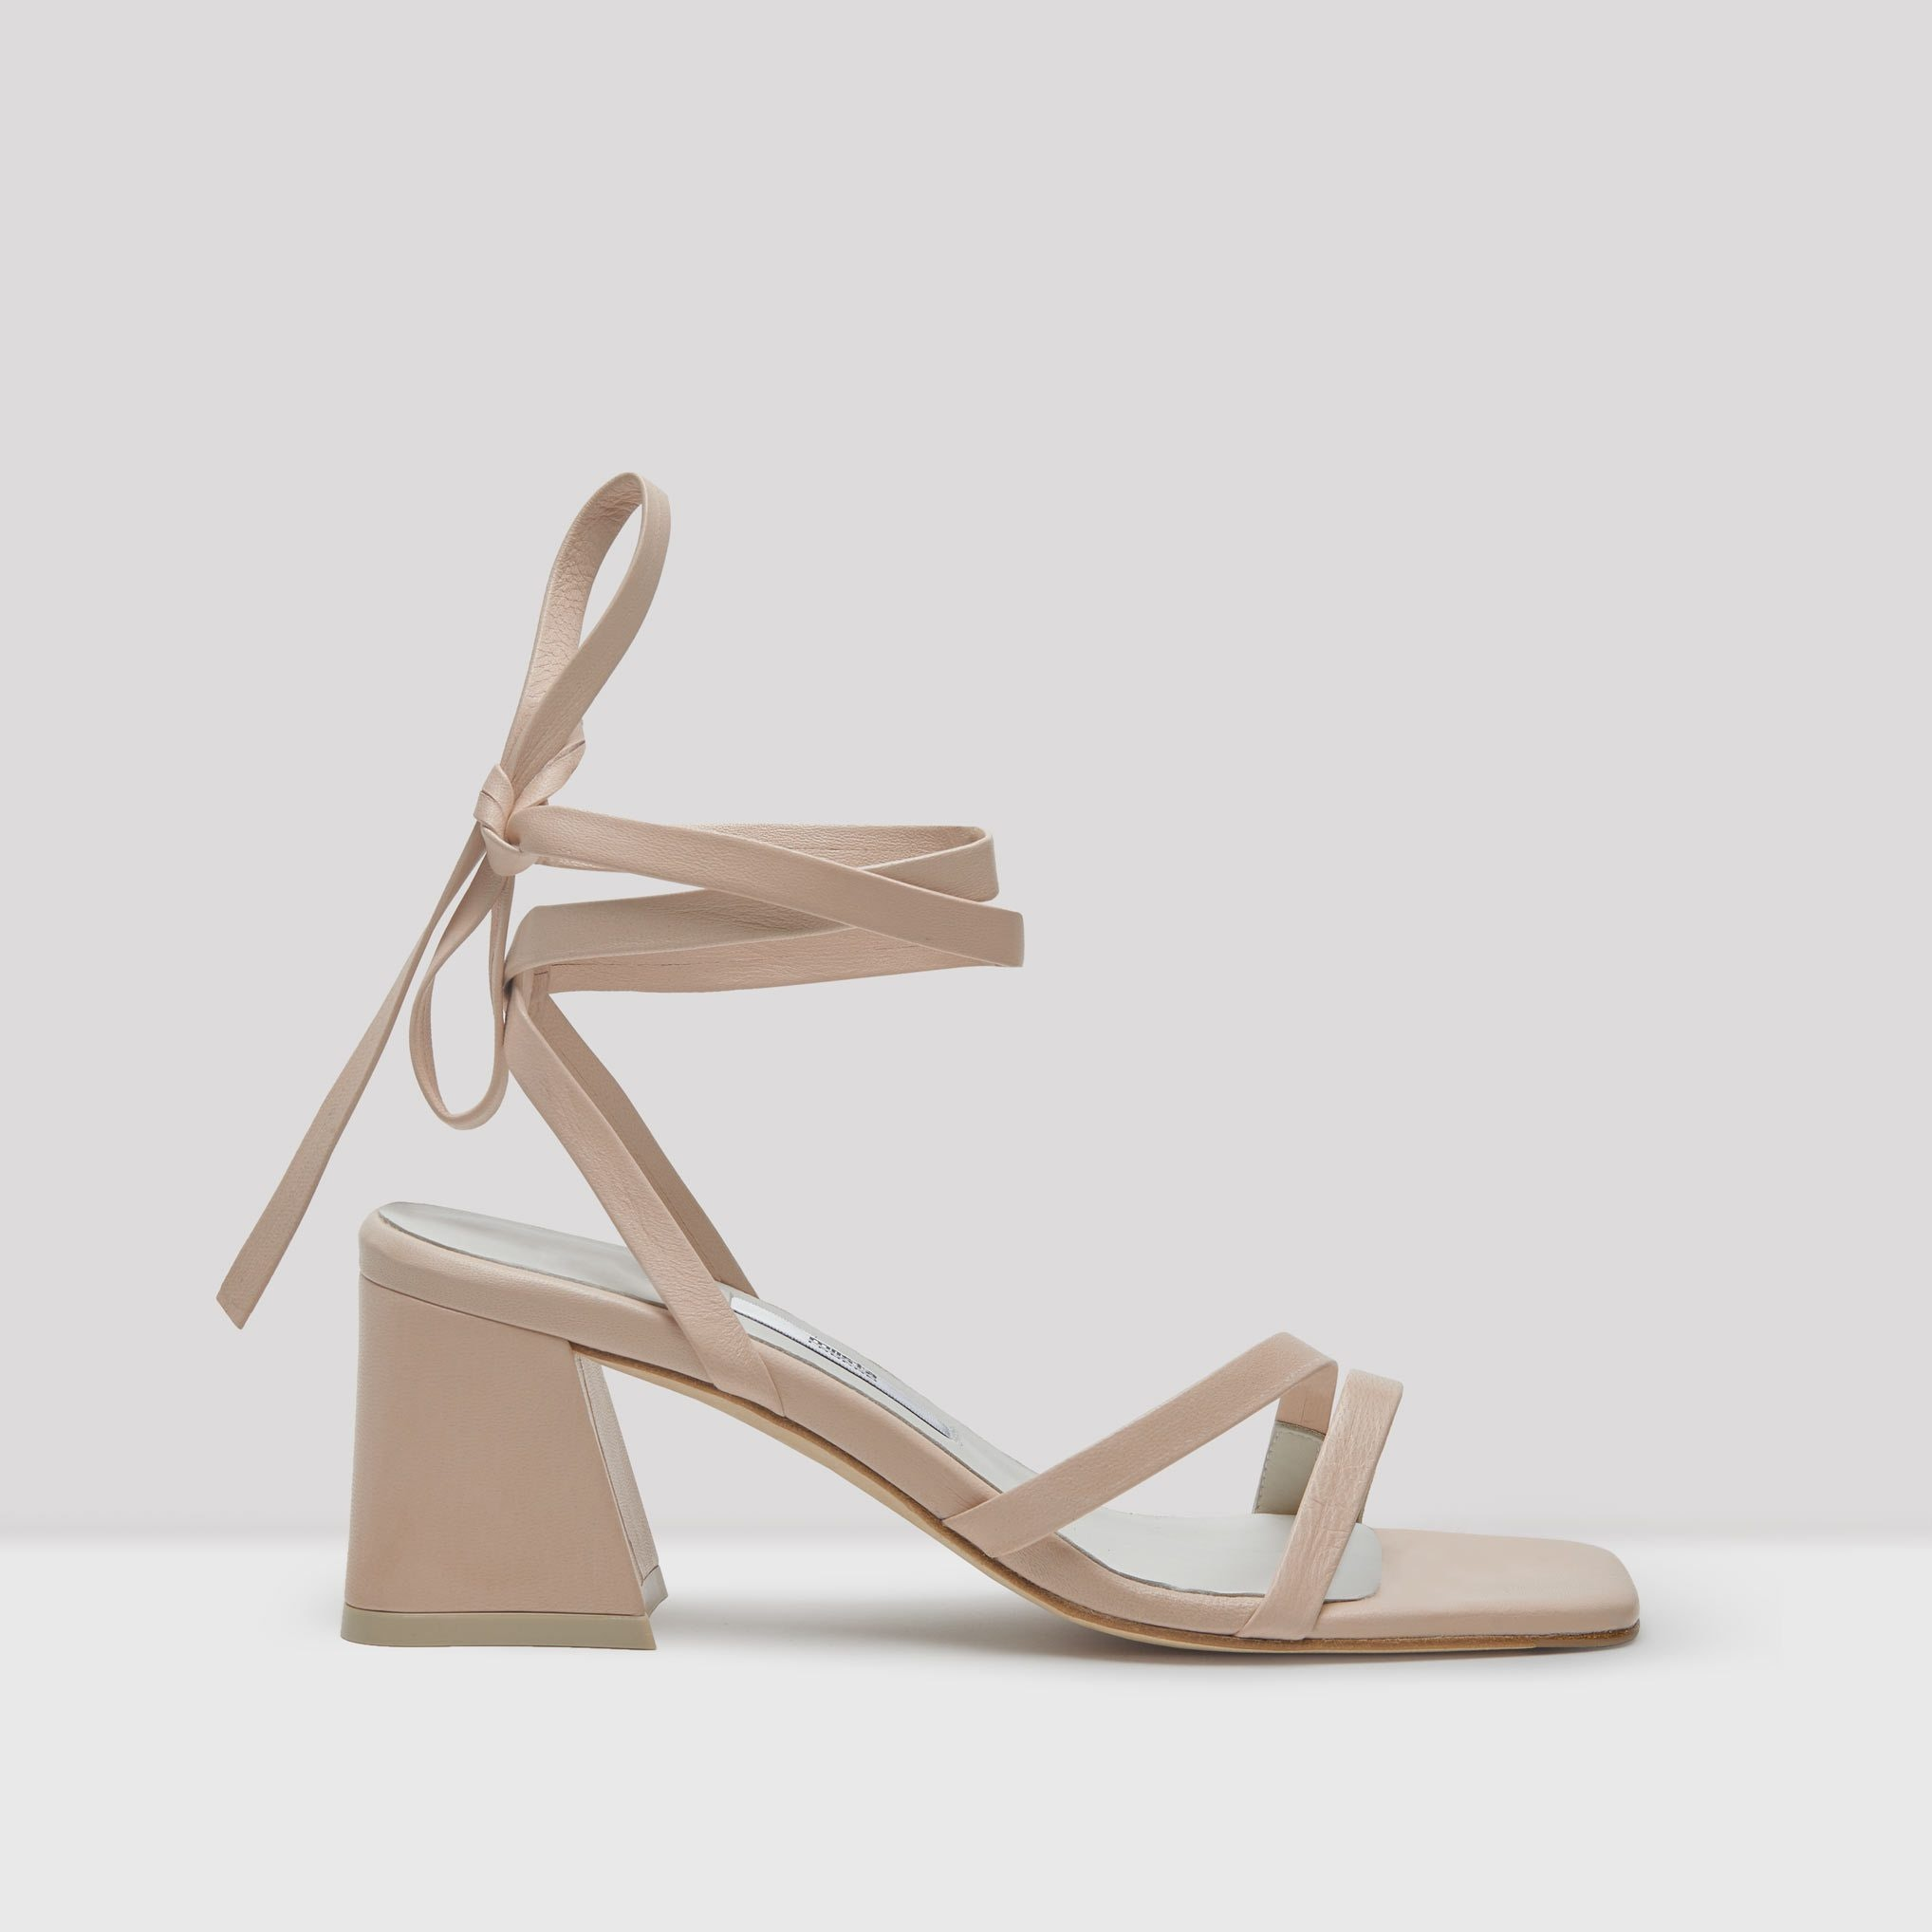 Try Share Before Designers Summer Emerging The Sandals To Over Shoe 4 Is K1J3FuTlc